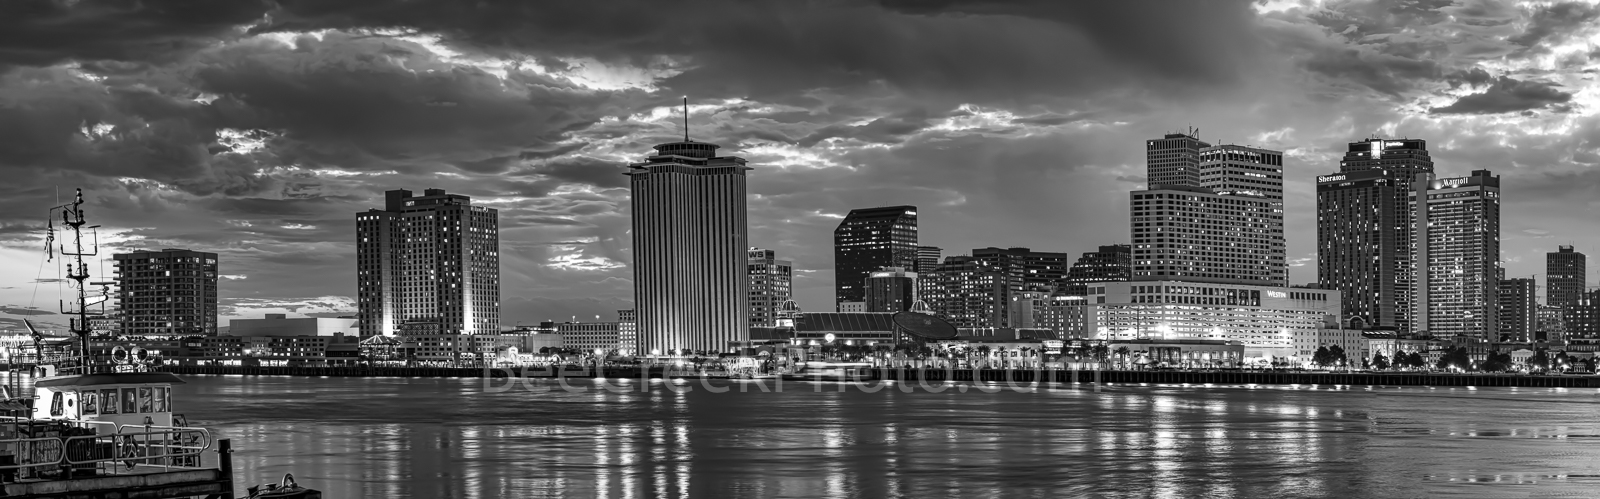 New Orleans, skyline, skylines, cityscape, cityscapes, dusk, sun set, downtown, high rise, buildings, river, city, BW, panorama, pano, Mississippi river, Louisiana,, photo